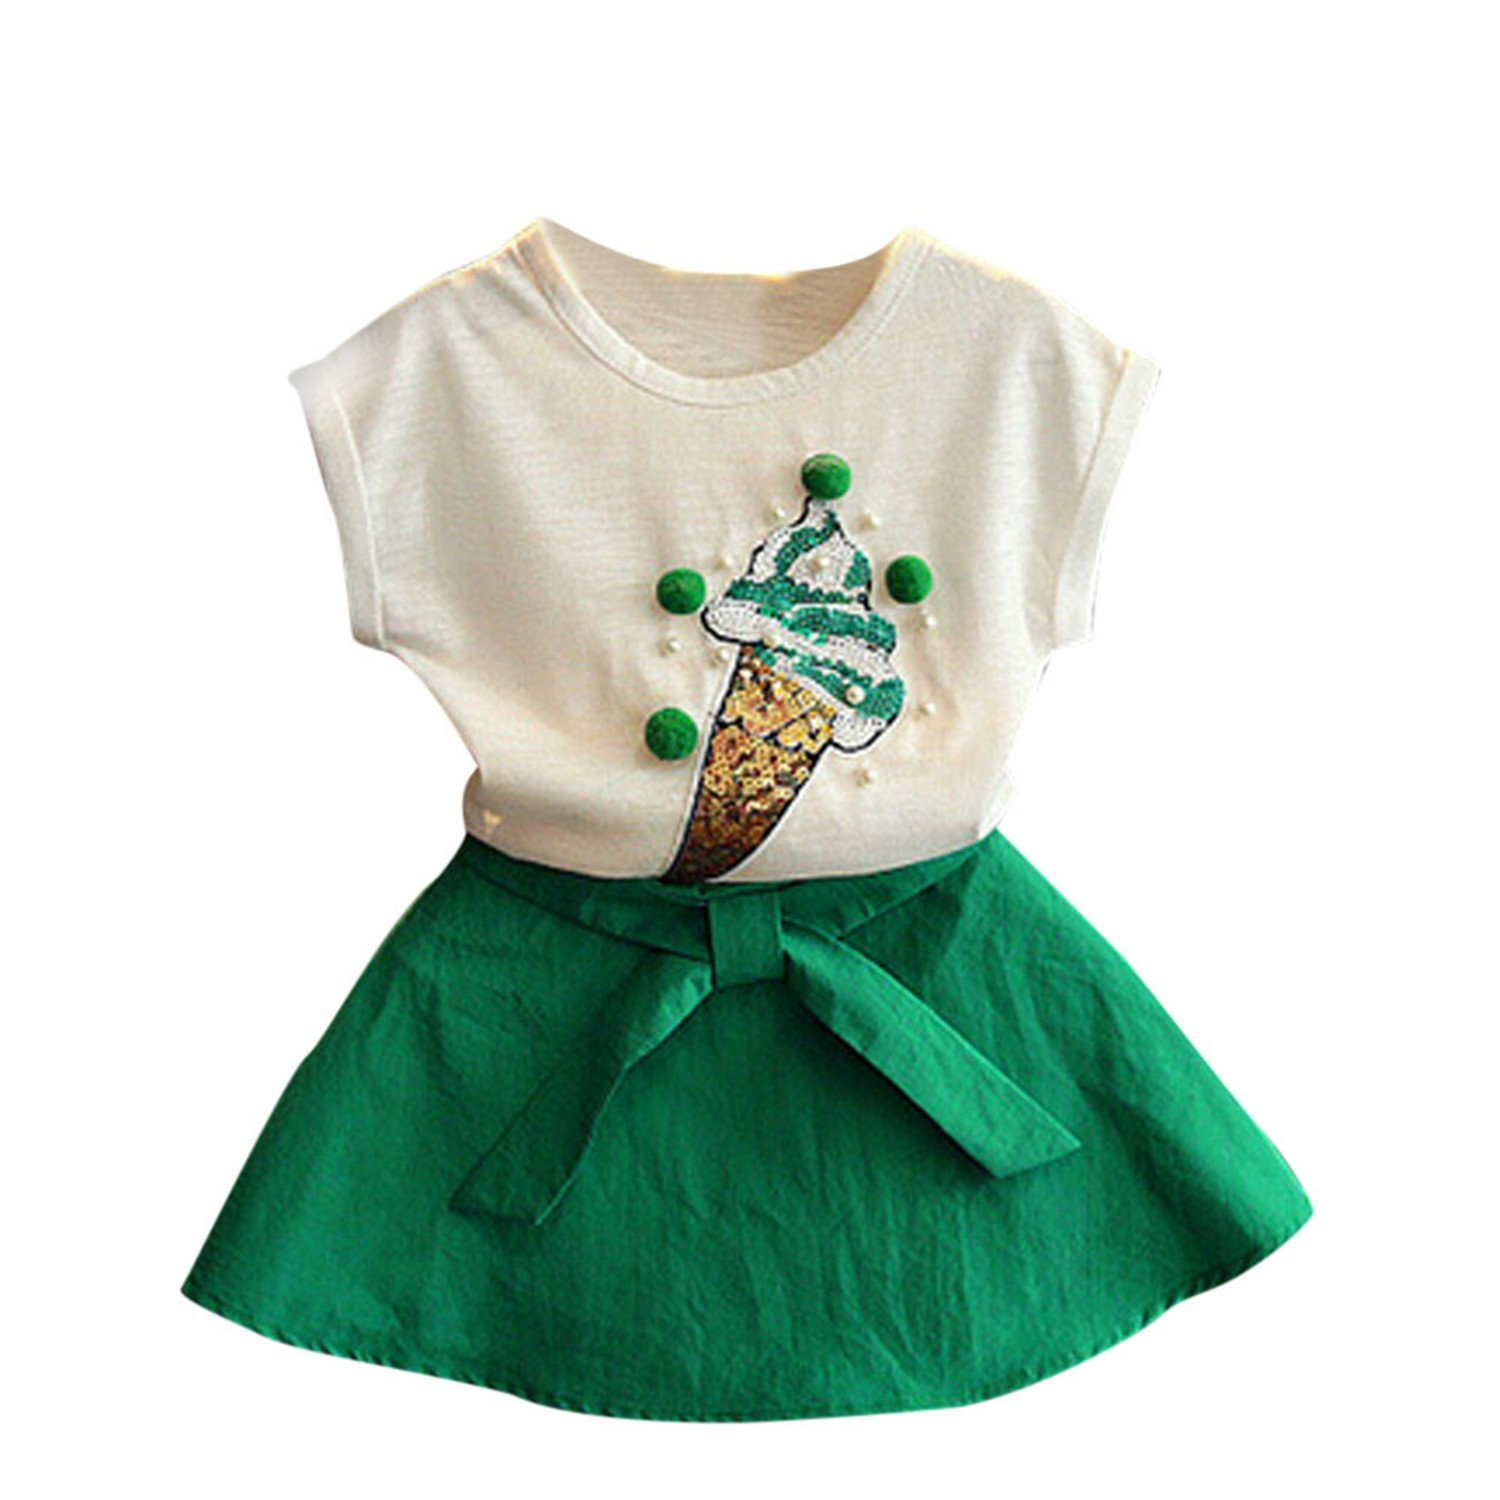 c6aa32eae3c37 Get Quotations · Nerefy Girls Clothes Kids Party Dresses Clothing Set T- Shirt+Skirts Girls Suit